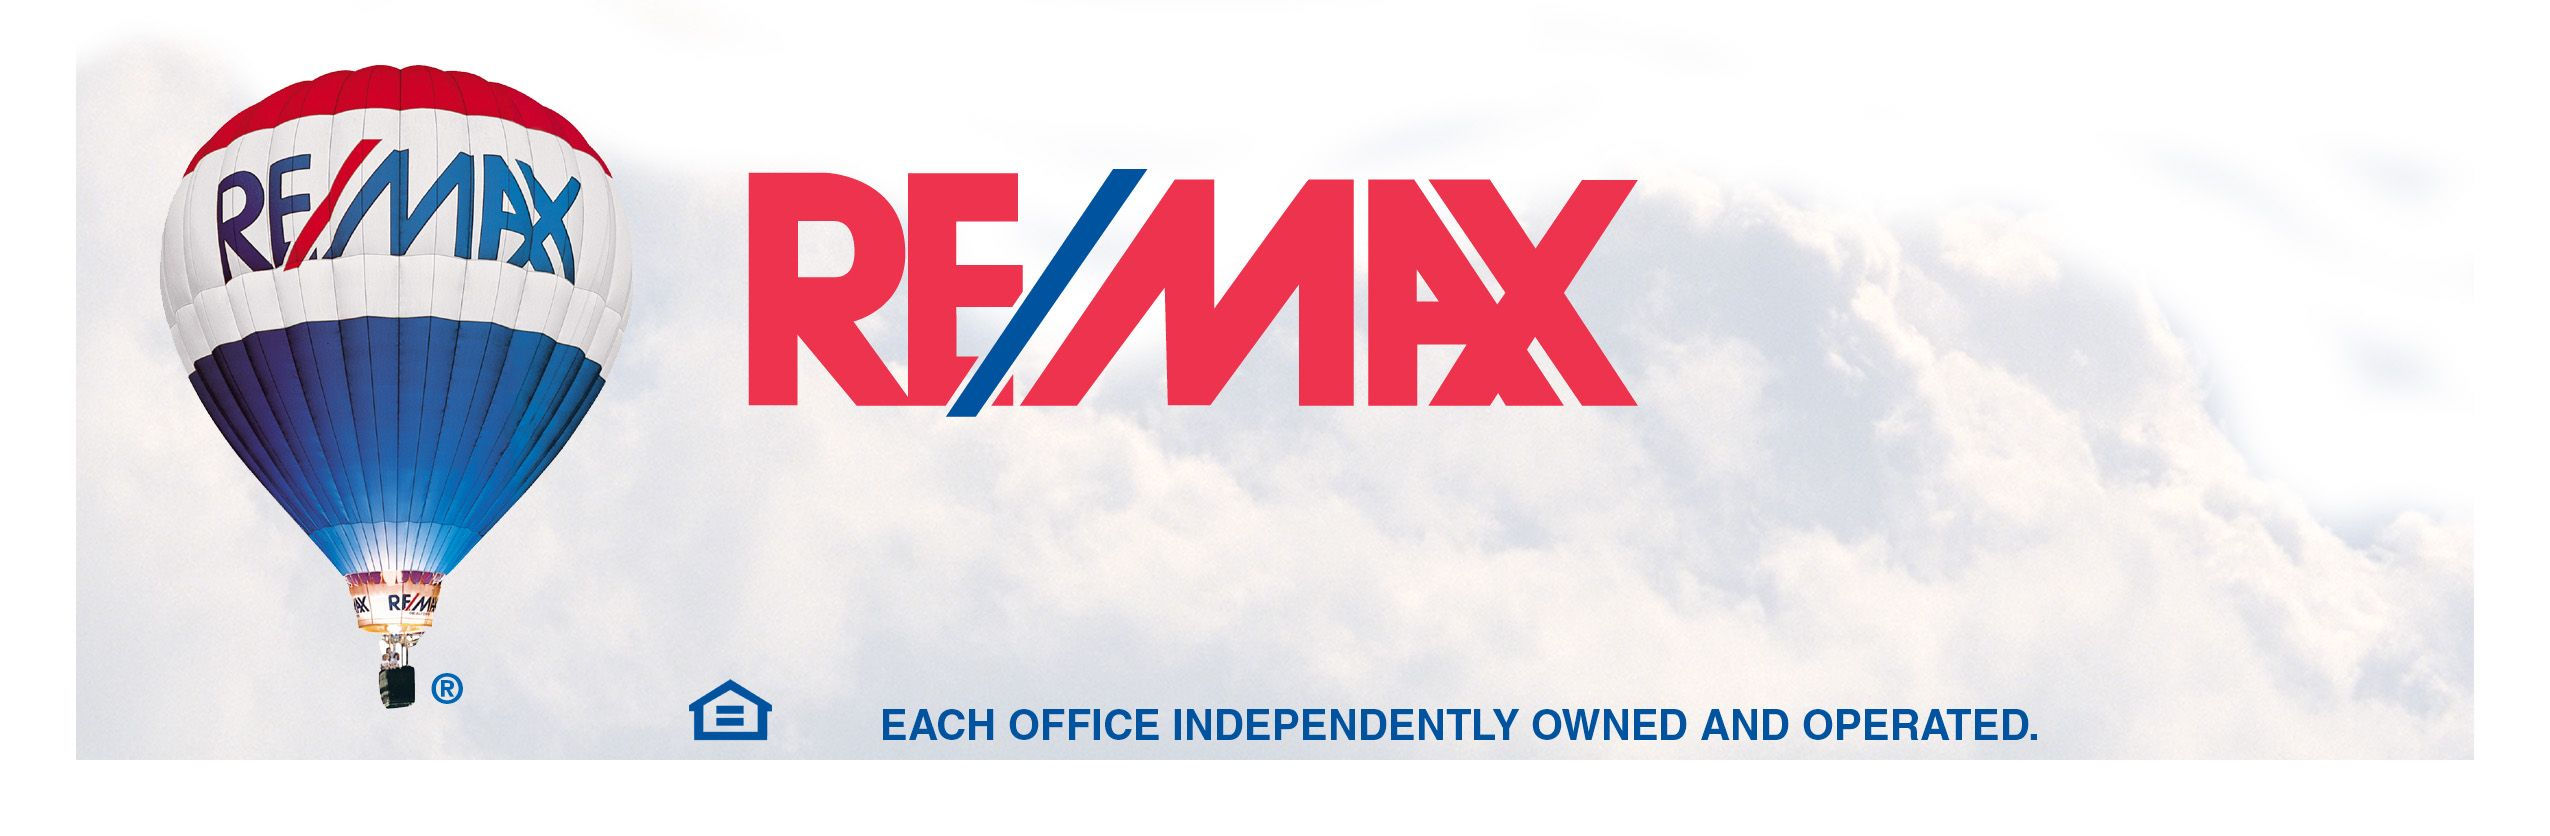 remax balloon logo page header hosted on httpwww